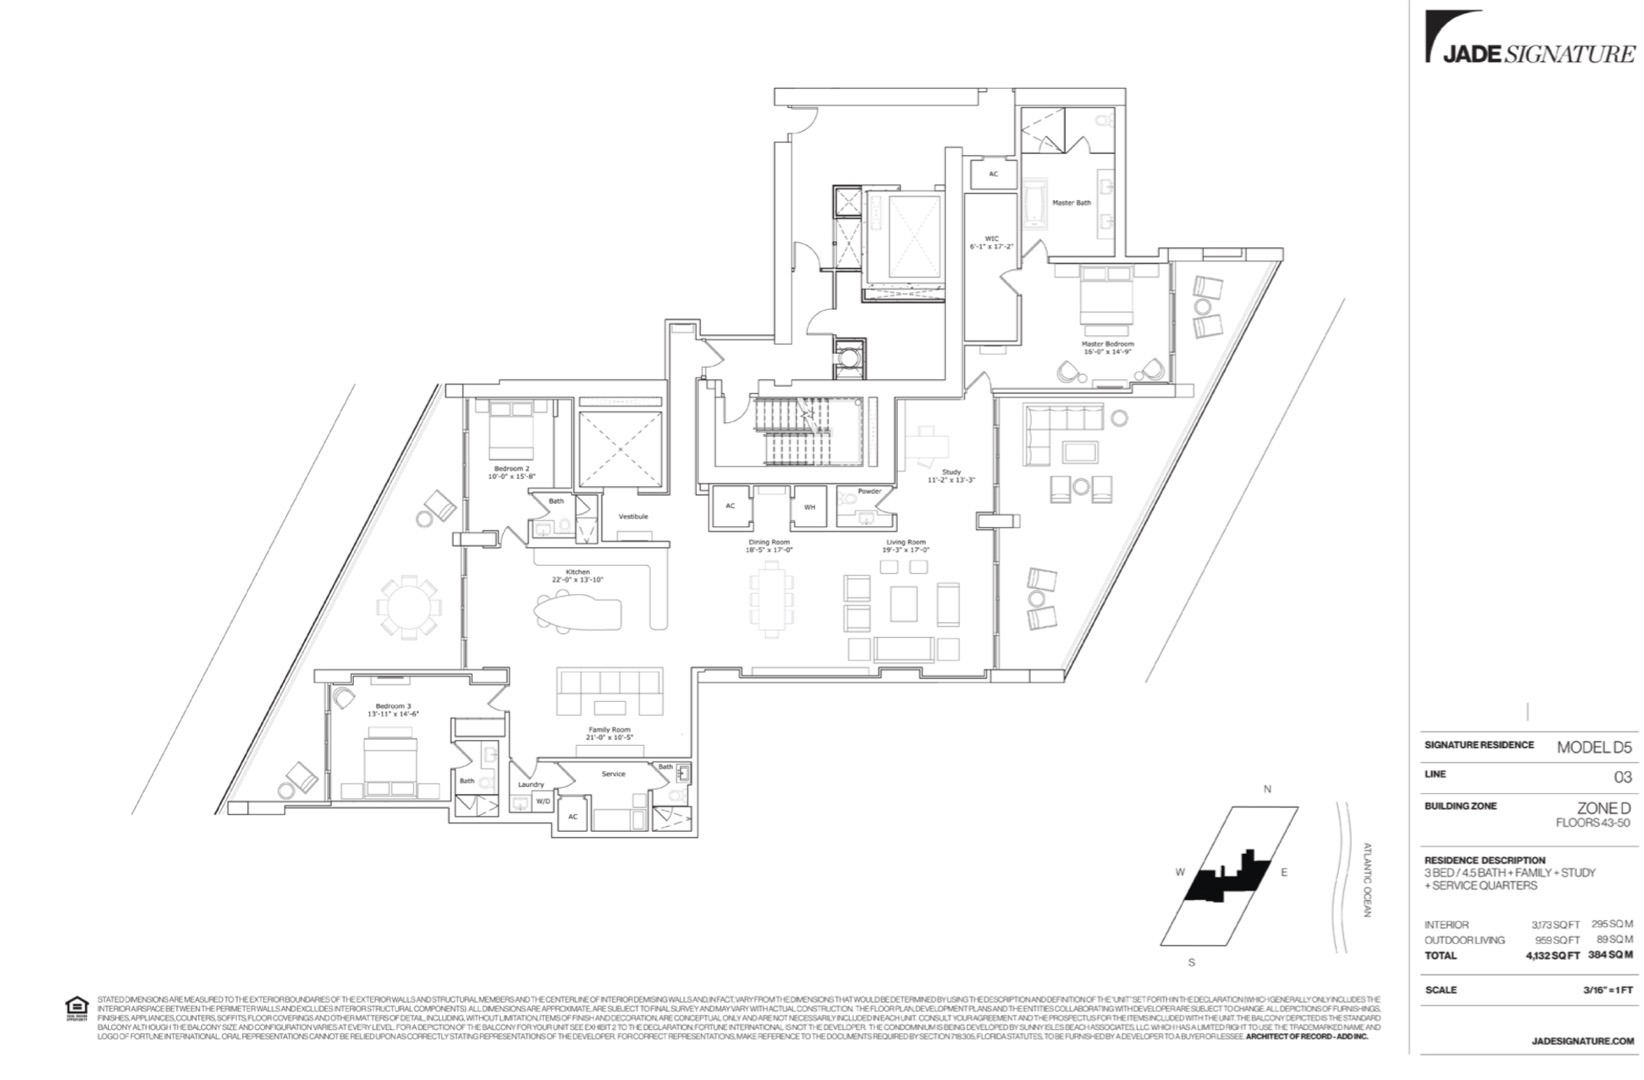 Floor plan image D5 - 3/4.5/FamilyRoom/Study/ServiceQuarters  - 3173 sqft image